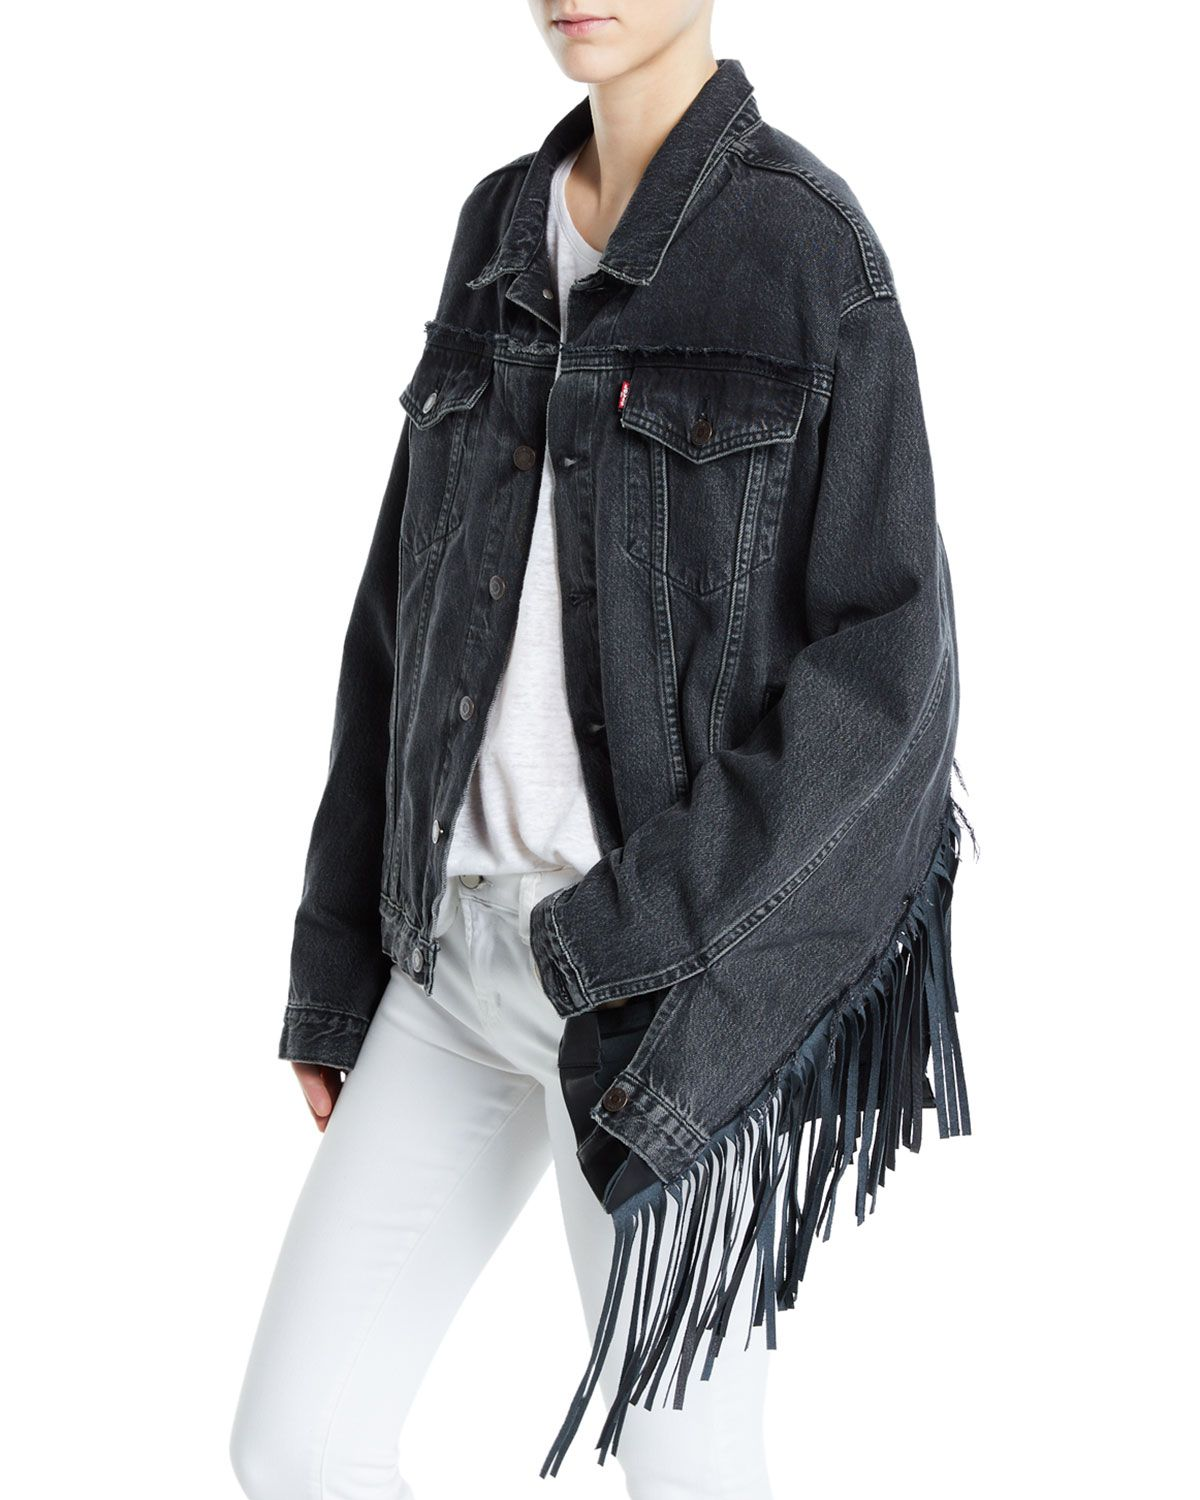 Leather Vetements Denim Trim cloth Jacket Fringe vetements 7wgwxrdq